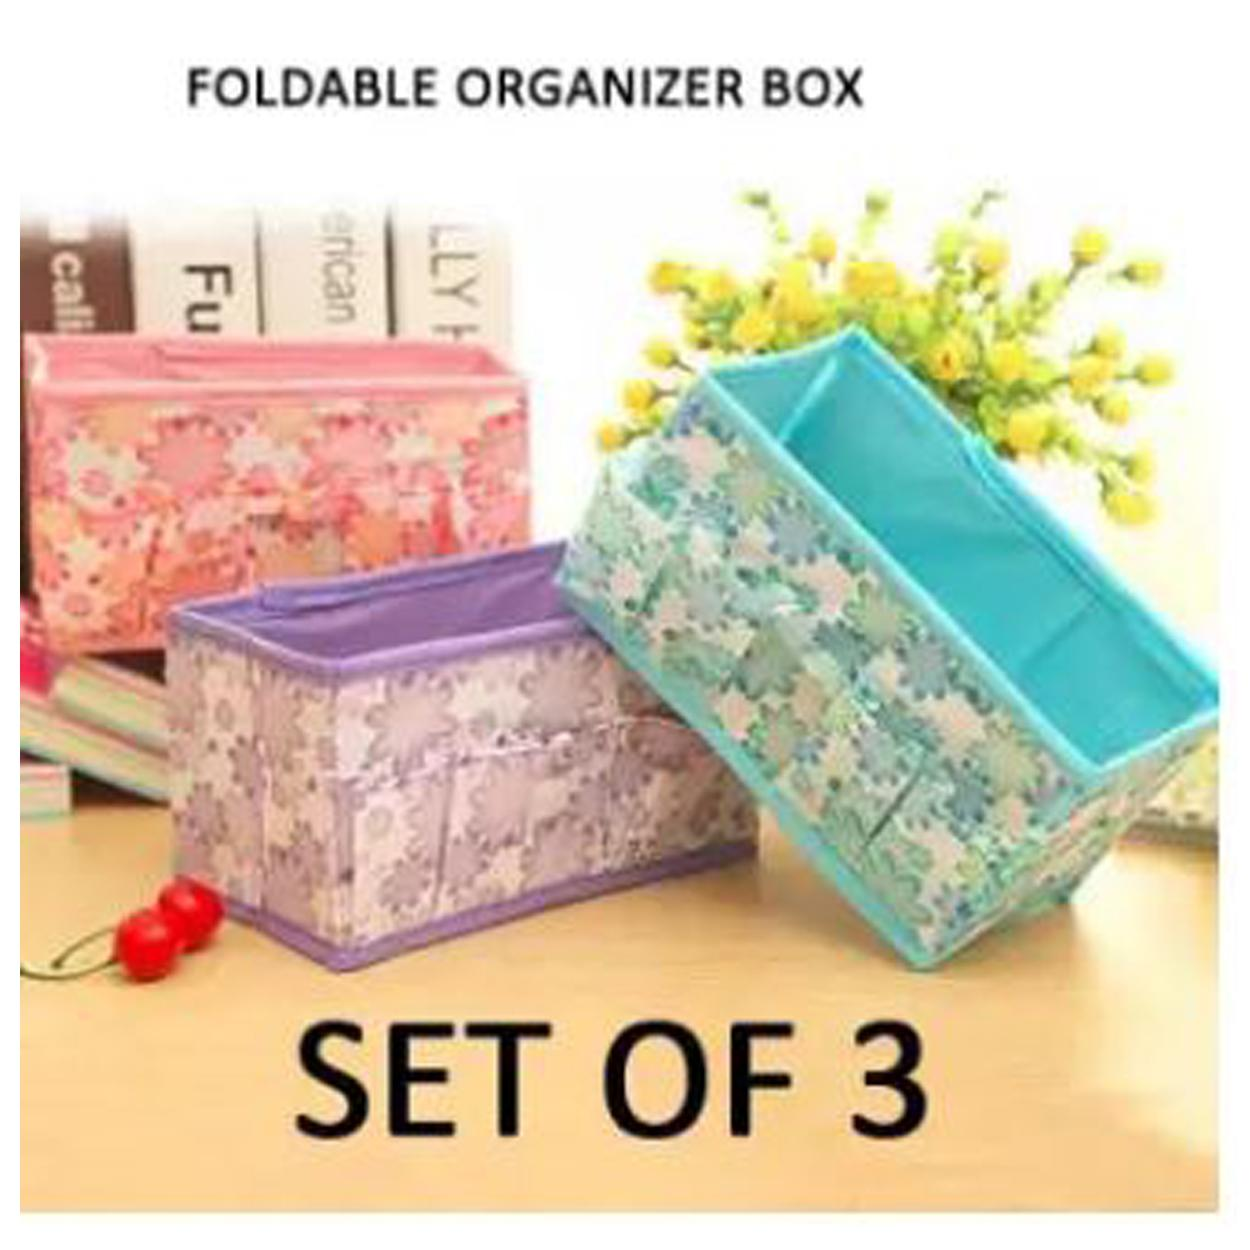 SET OF 3 .Multicolor Floral Printing Non-Woven Fabric Folding Case Storage Box Foldable Cosmetic Storage Box Makeup Organizer Desktop Jewelry Box (Multicolor) Philippines